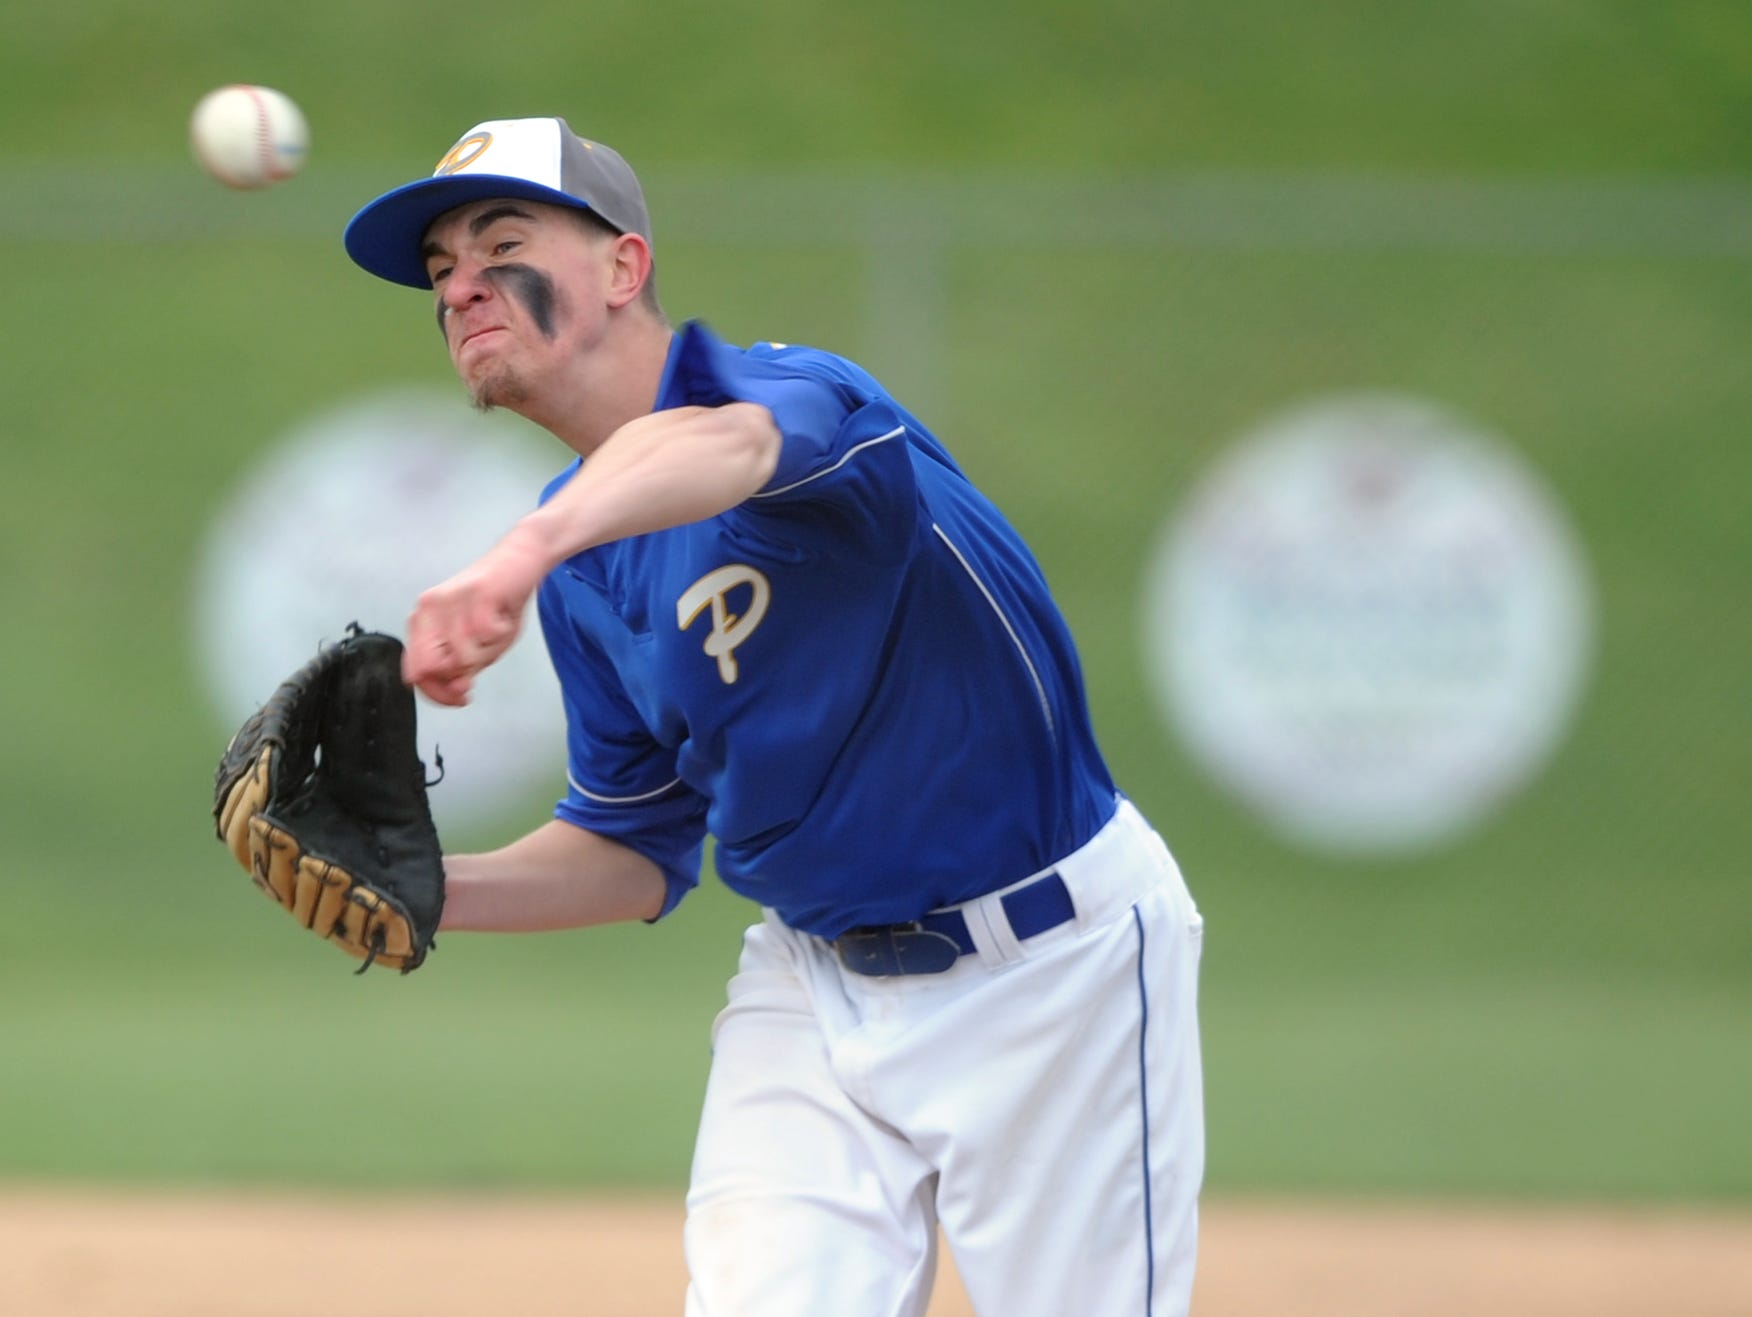 Philo's Dakota Peyton delivers a pitch in the first inning of a 1-0 win over West Muskingum on Thursday at West Muskingum High School in Zanesville. Peyton struck out nine batters while allowing three hits in the complete-game shutout.